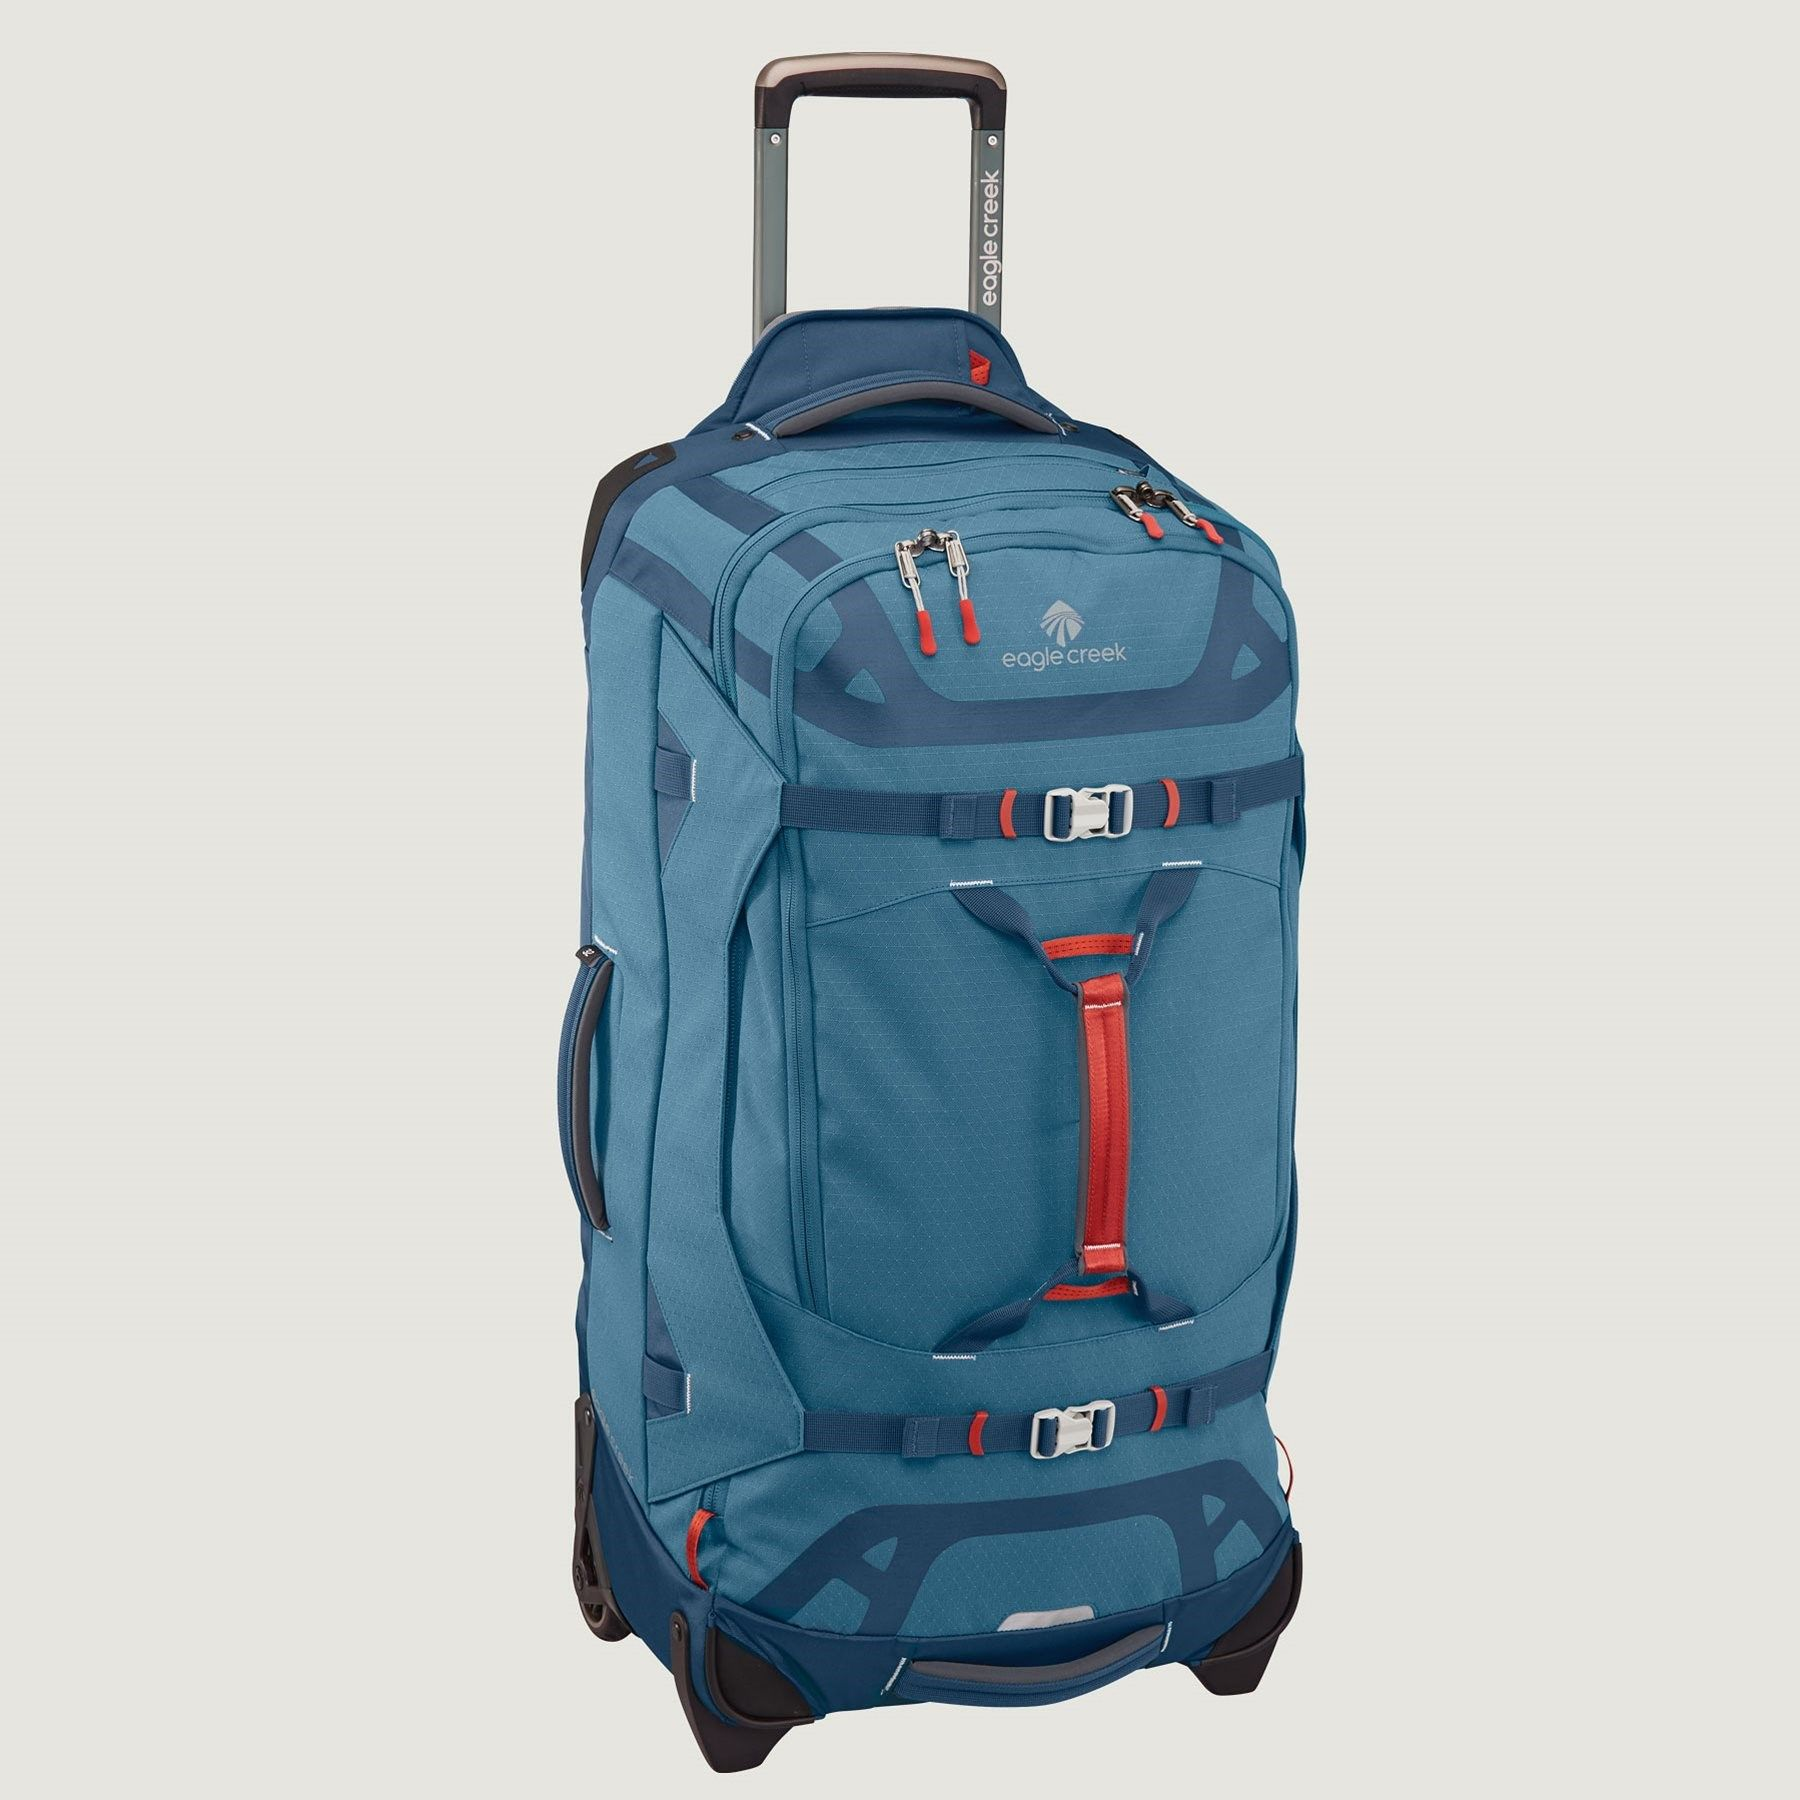 1aed5f6a57f8 High Sierra Adventure Access 32 Inch Wheeled Duffel With Backpack Straps